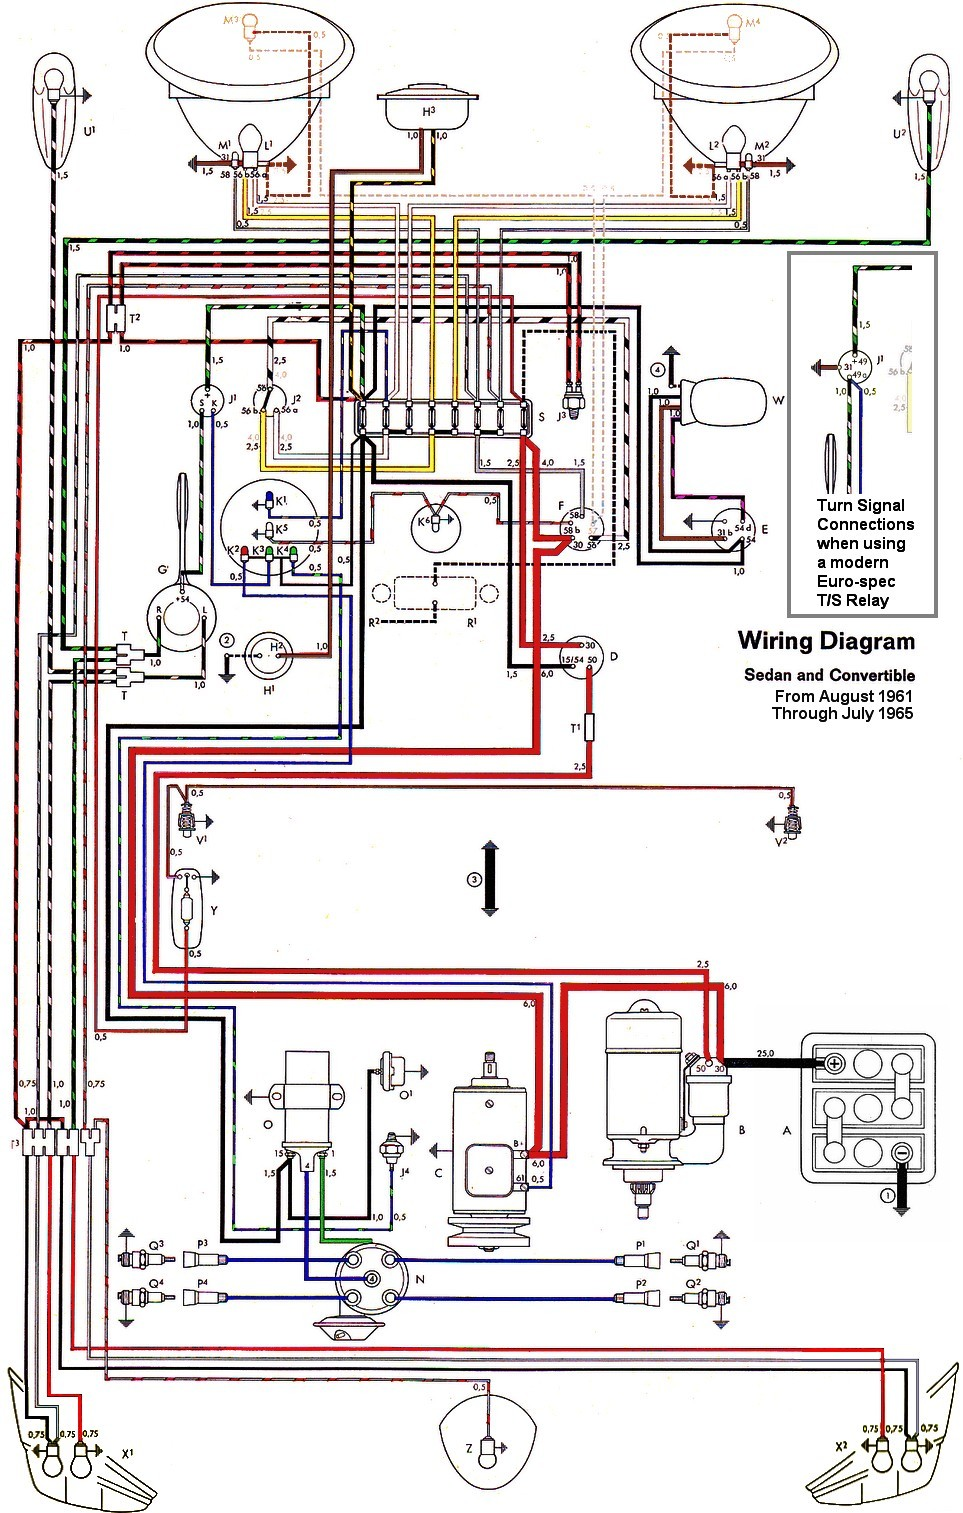 hight resolution of mexican vw beetle wiring diagram wiring diagram todays rh 8 12 1813weddingbarn com 2005 jetta alternator wiring vw tdi alternator wire diagram